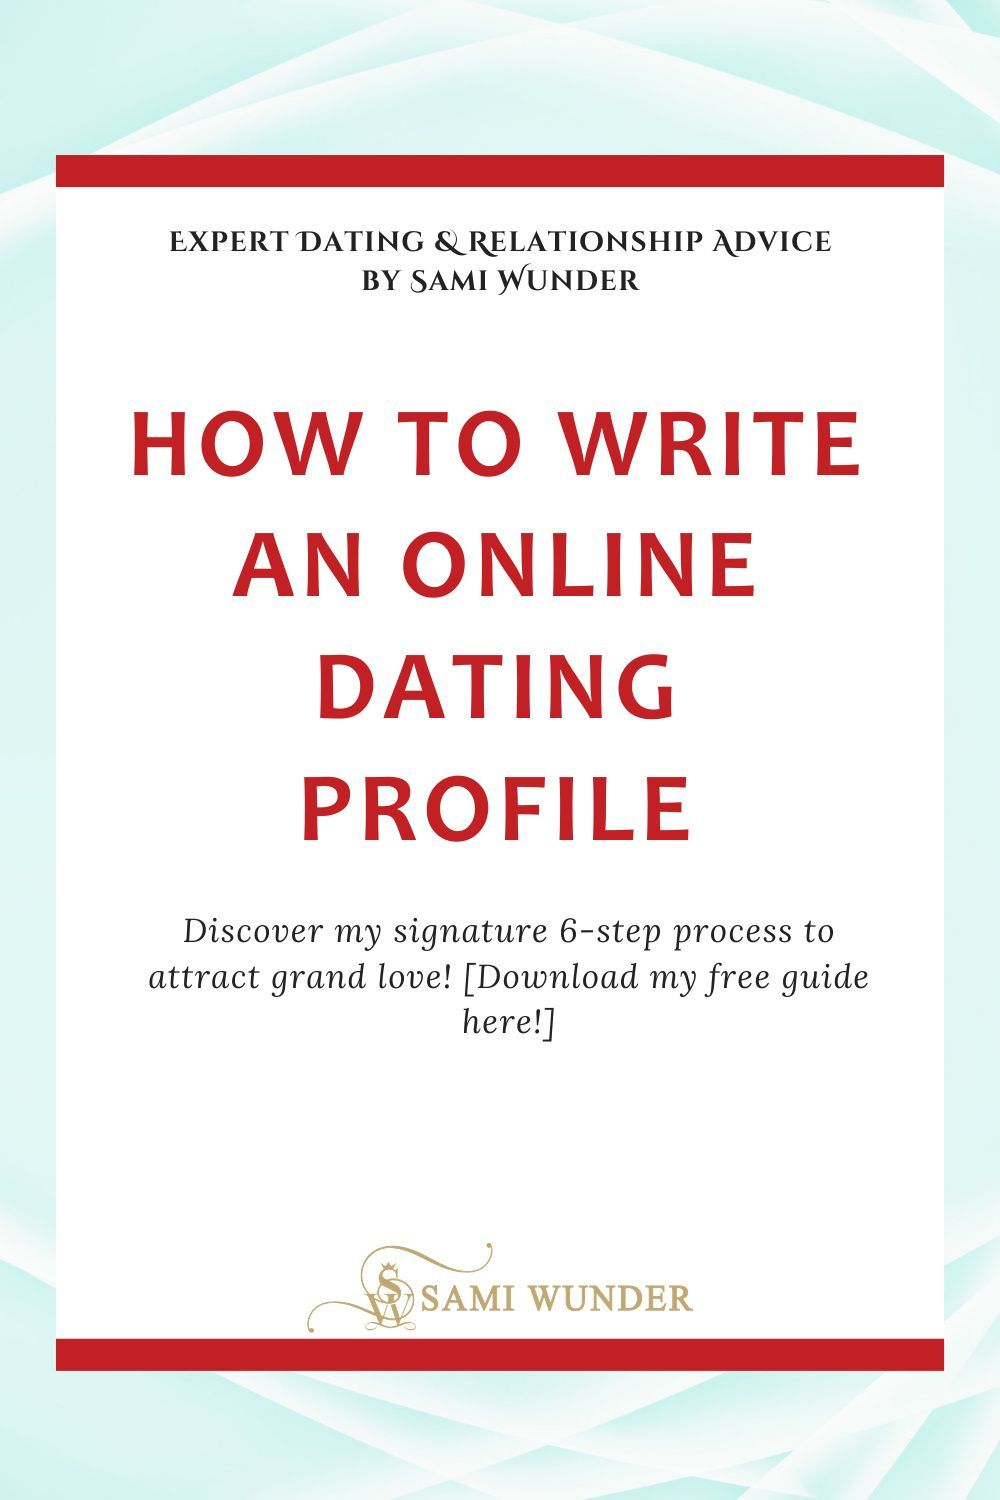 How To Write An Online Dating Profile 7 Expert Tips To Stand Out Online In 2020 Online Dating Profile Online Dating Profile Examples Dating Relationship Advice